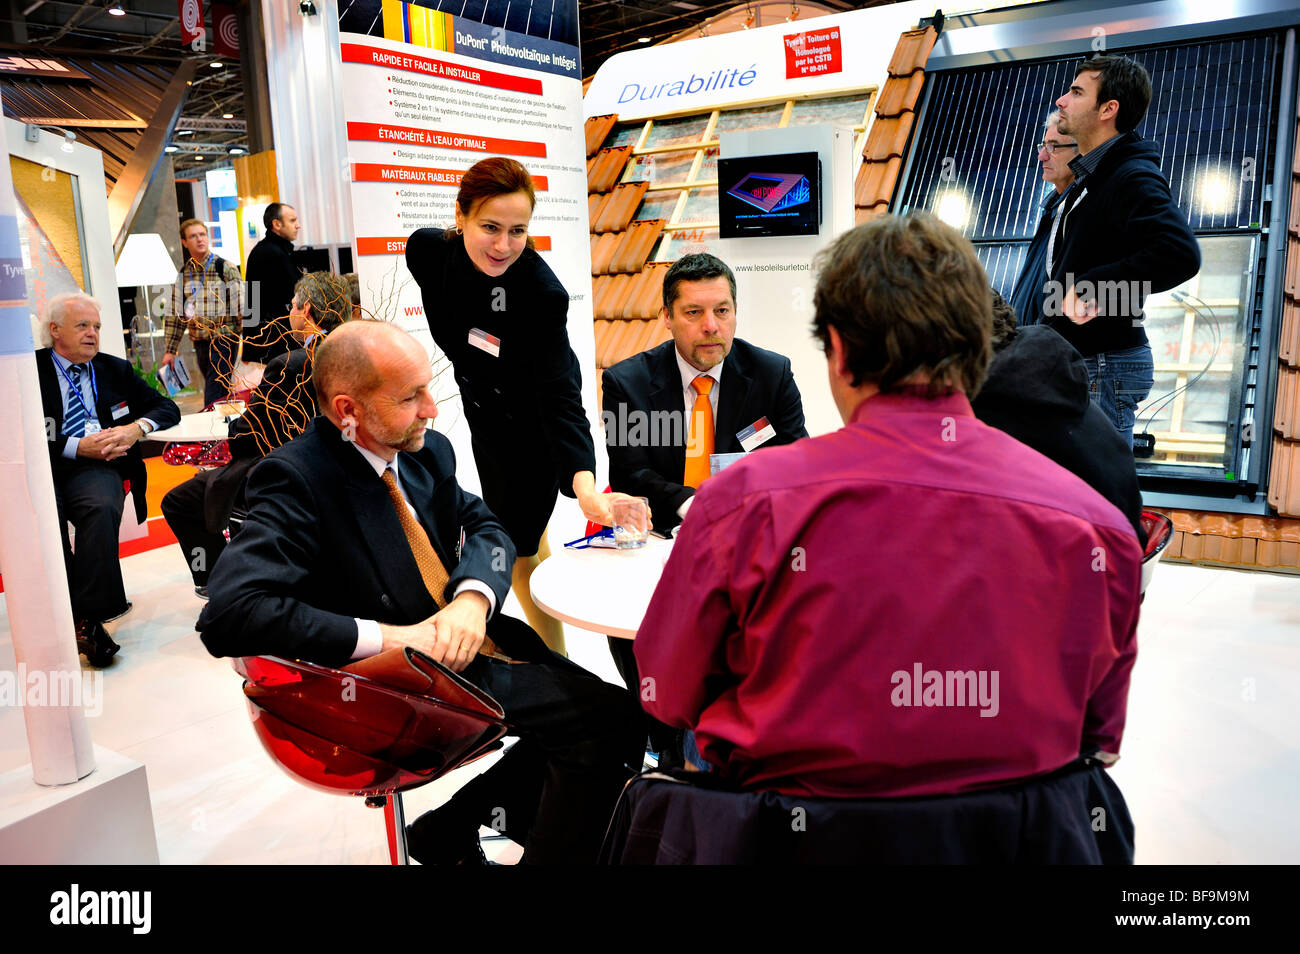 Paris, France, Business Meeting, Construction Equipment Trade Show,  Dupont Corporation Display, Green Energy - Stock Image